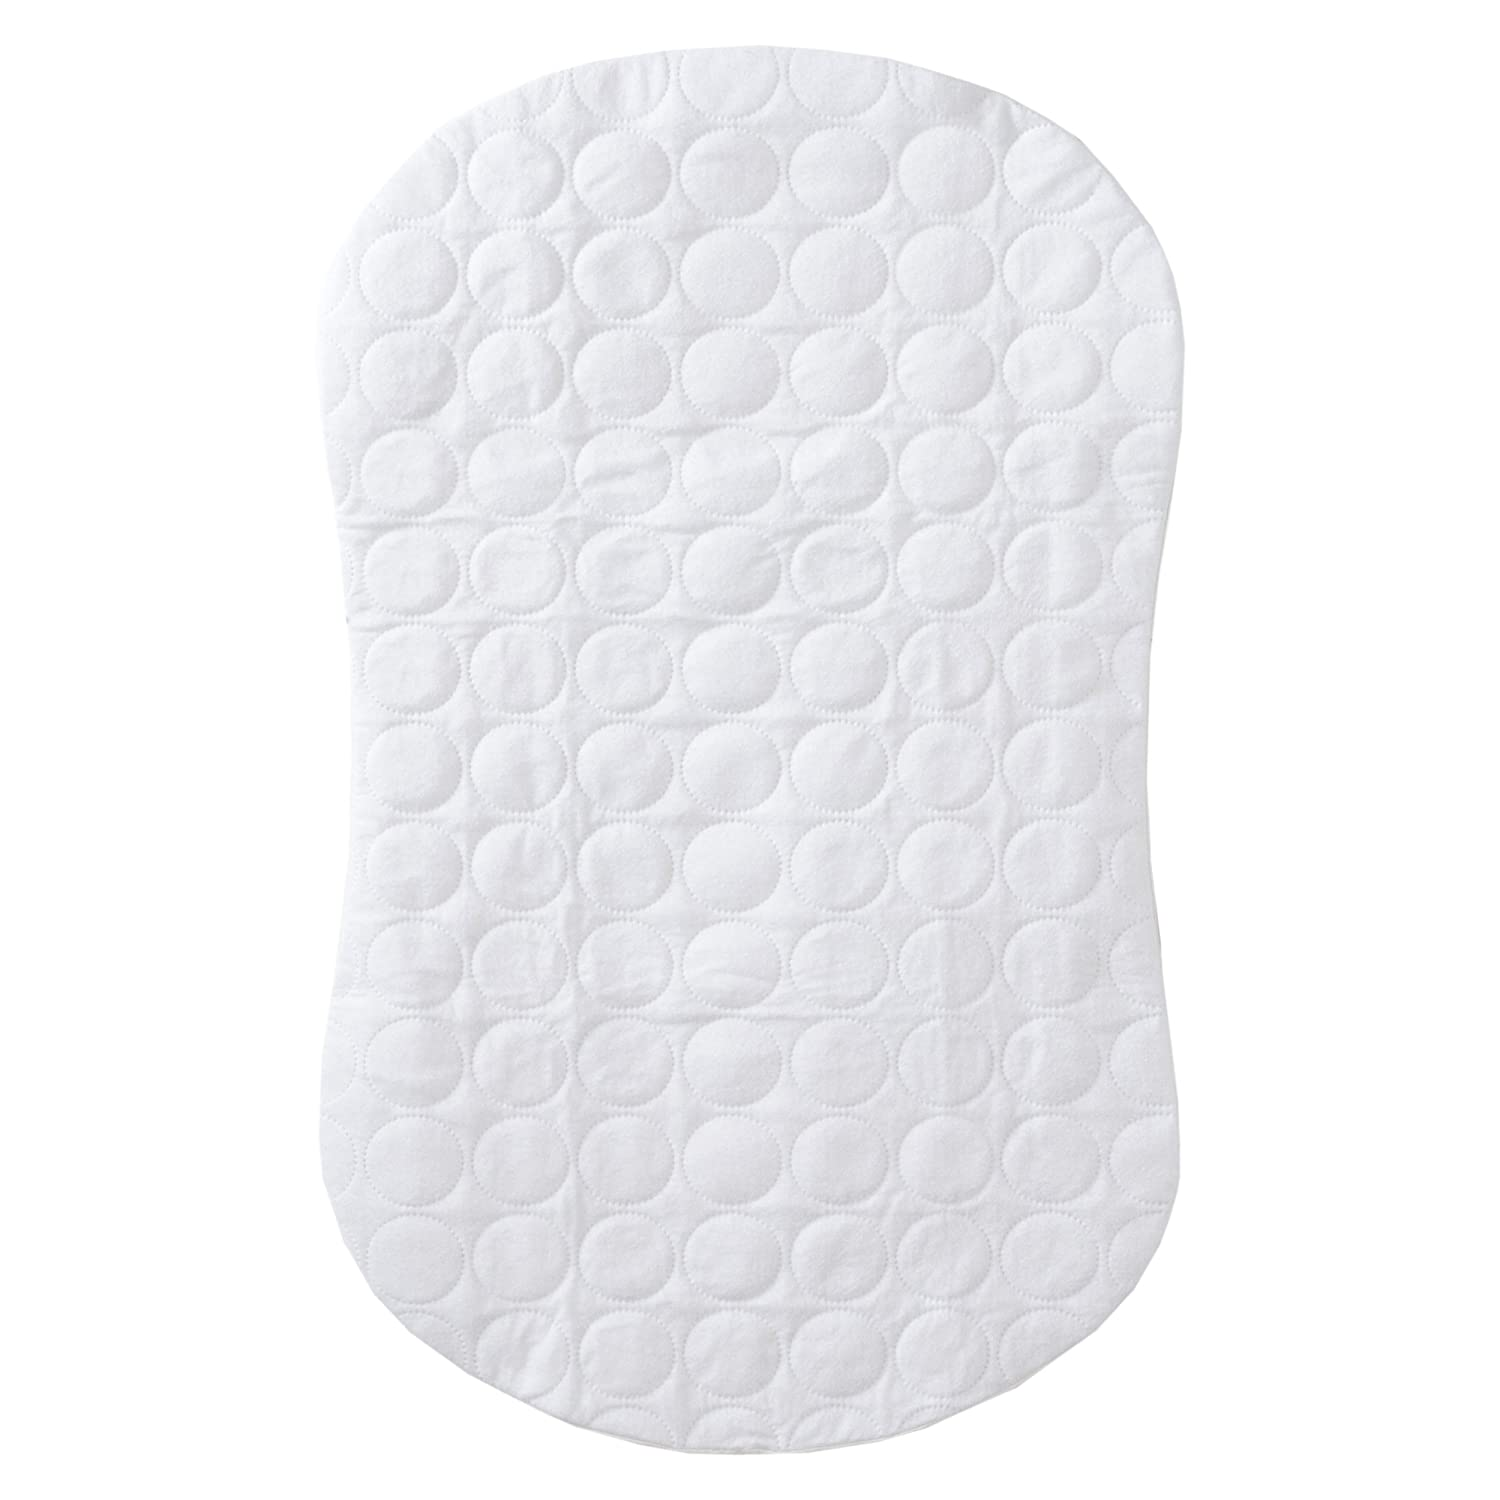 Halo Bassinest Swivel Sleeper Mattress Pad Waterproof Polyester, White 10725